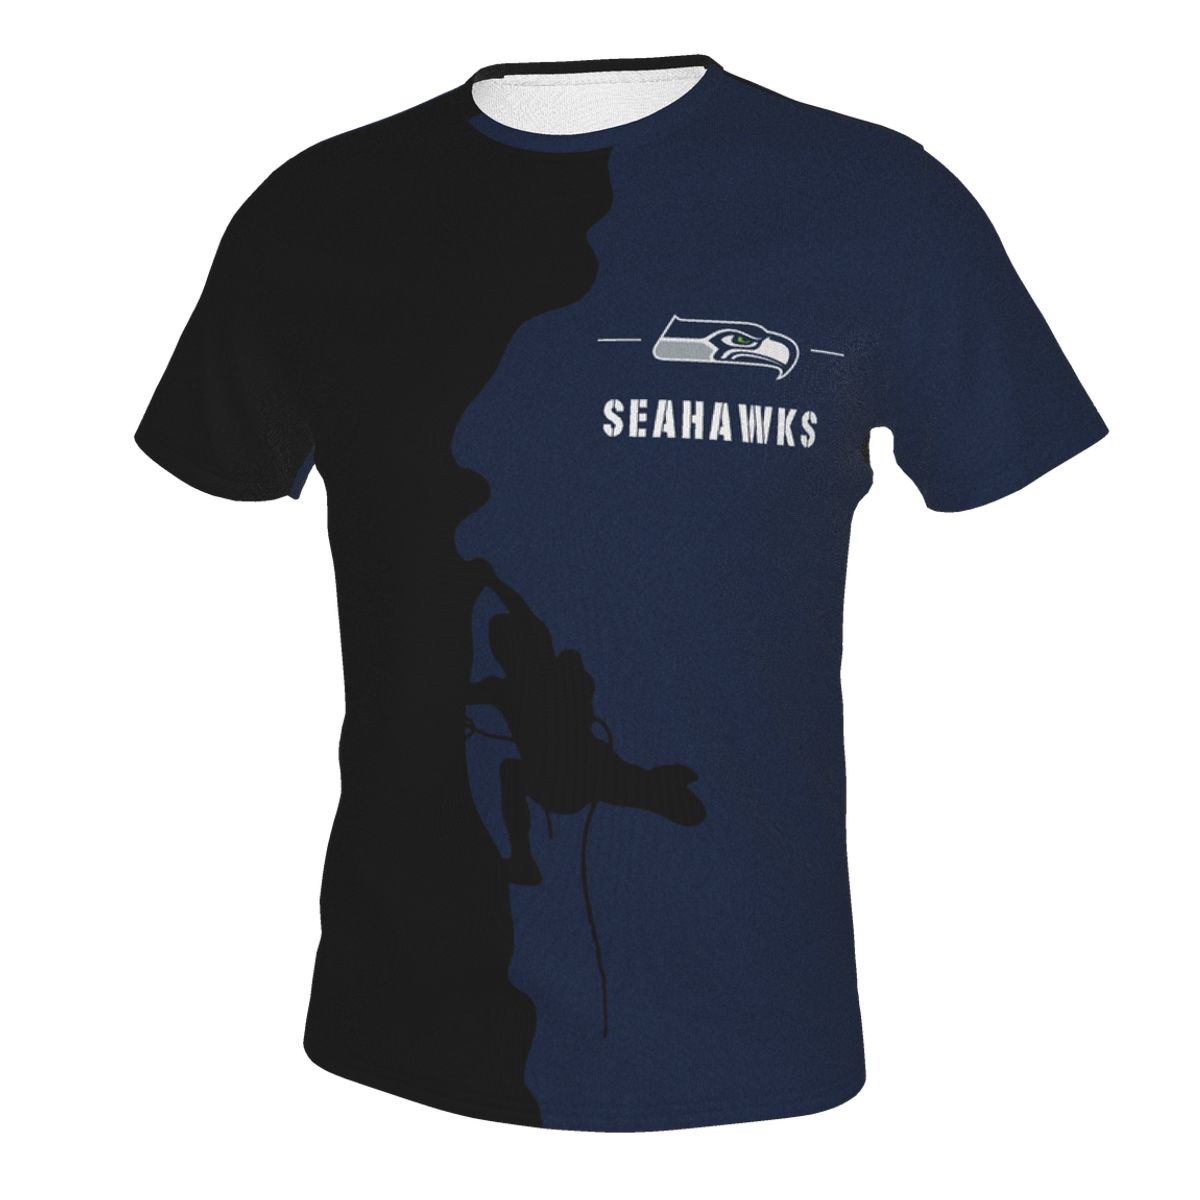 Climber Seahawks T-shirts For Men